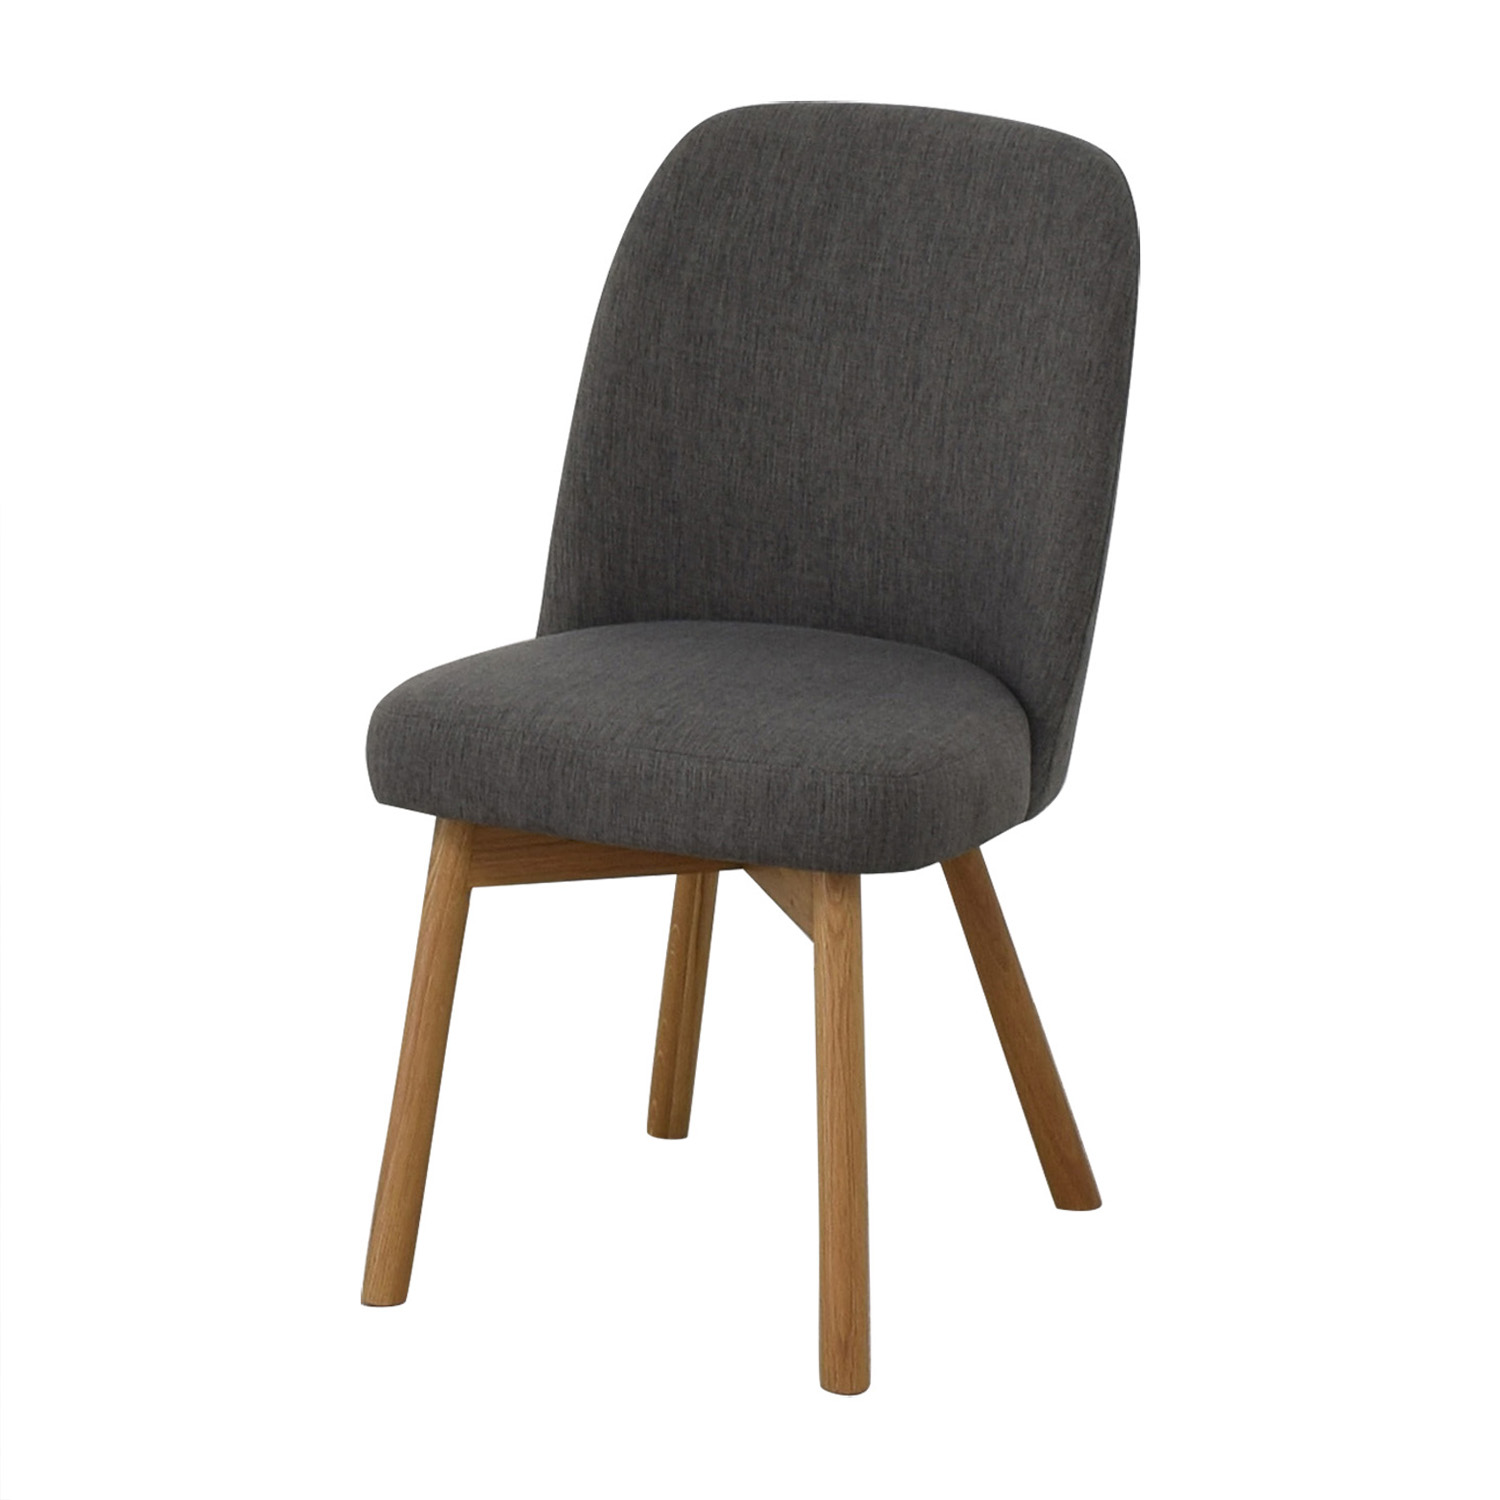 Interior Define Dylan Cross Weave Mushroom Dining Chair dimensions